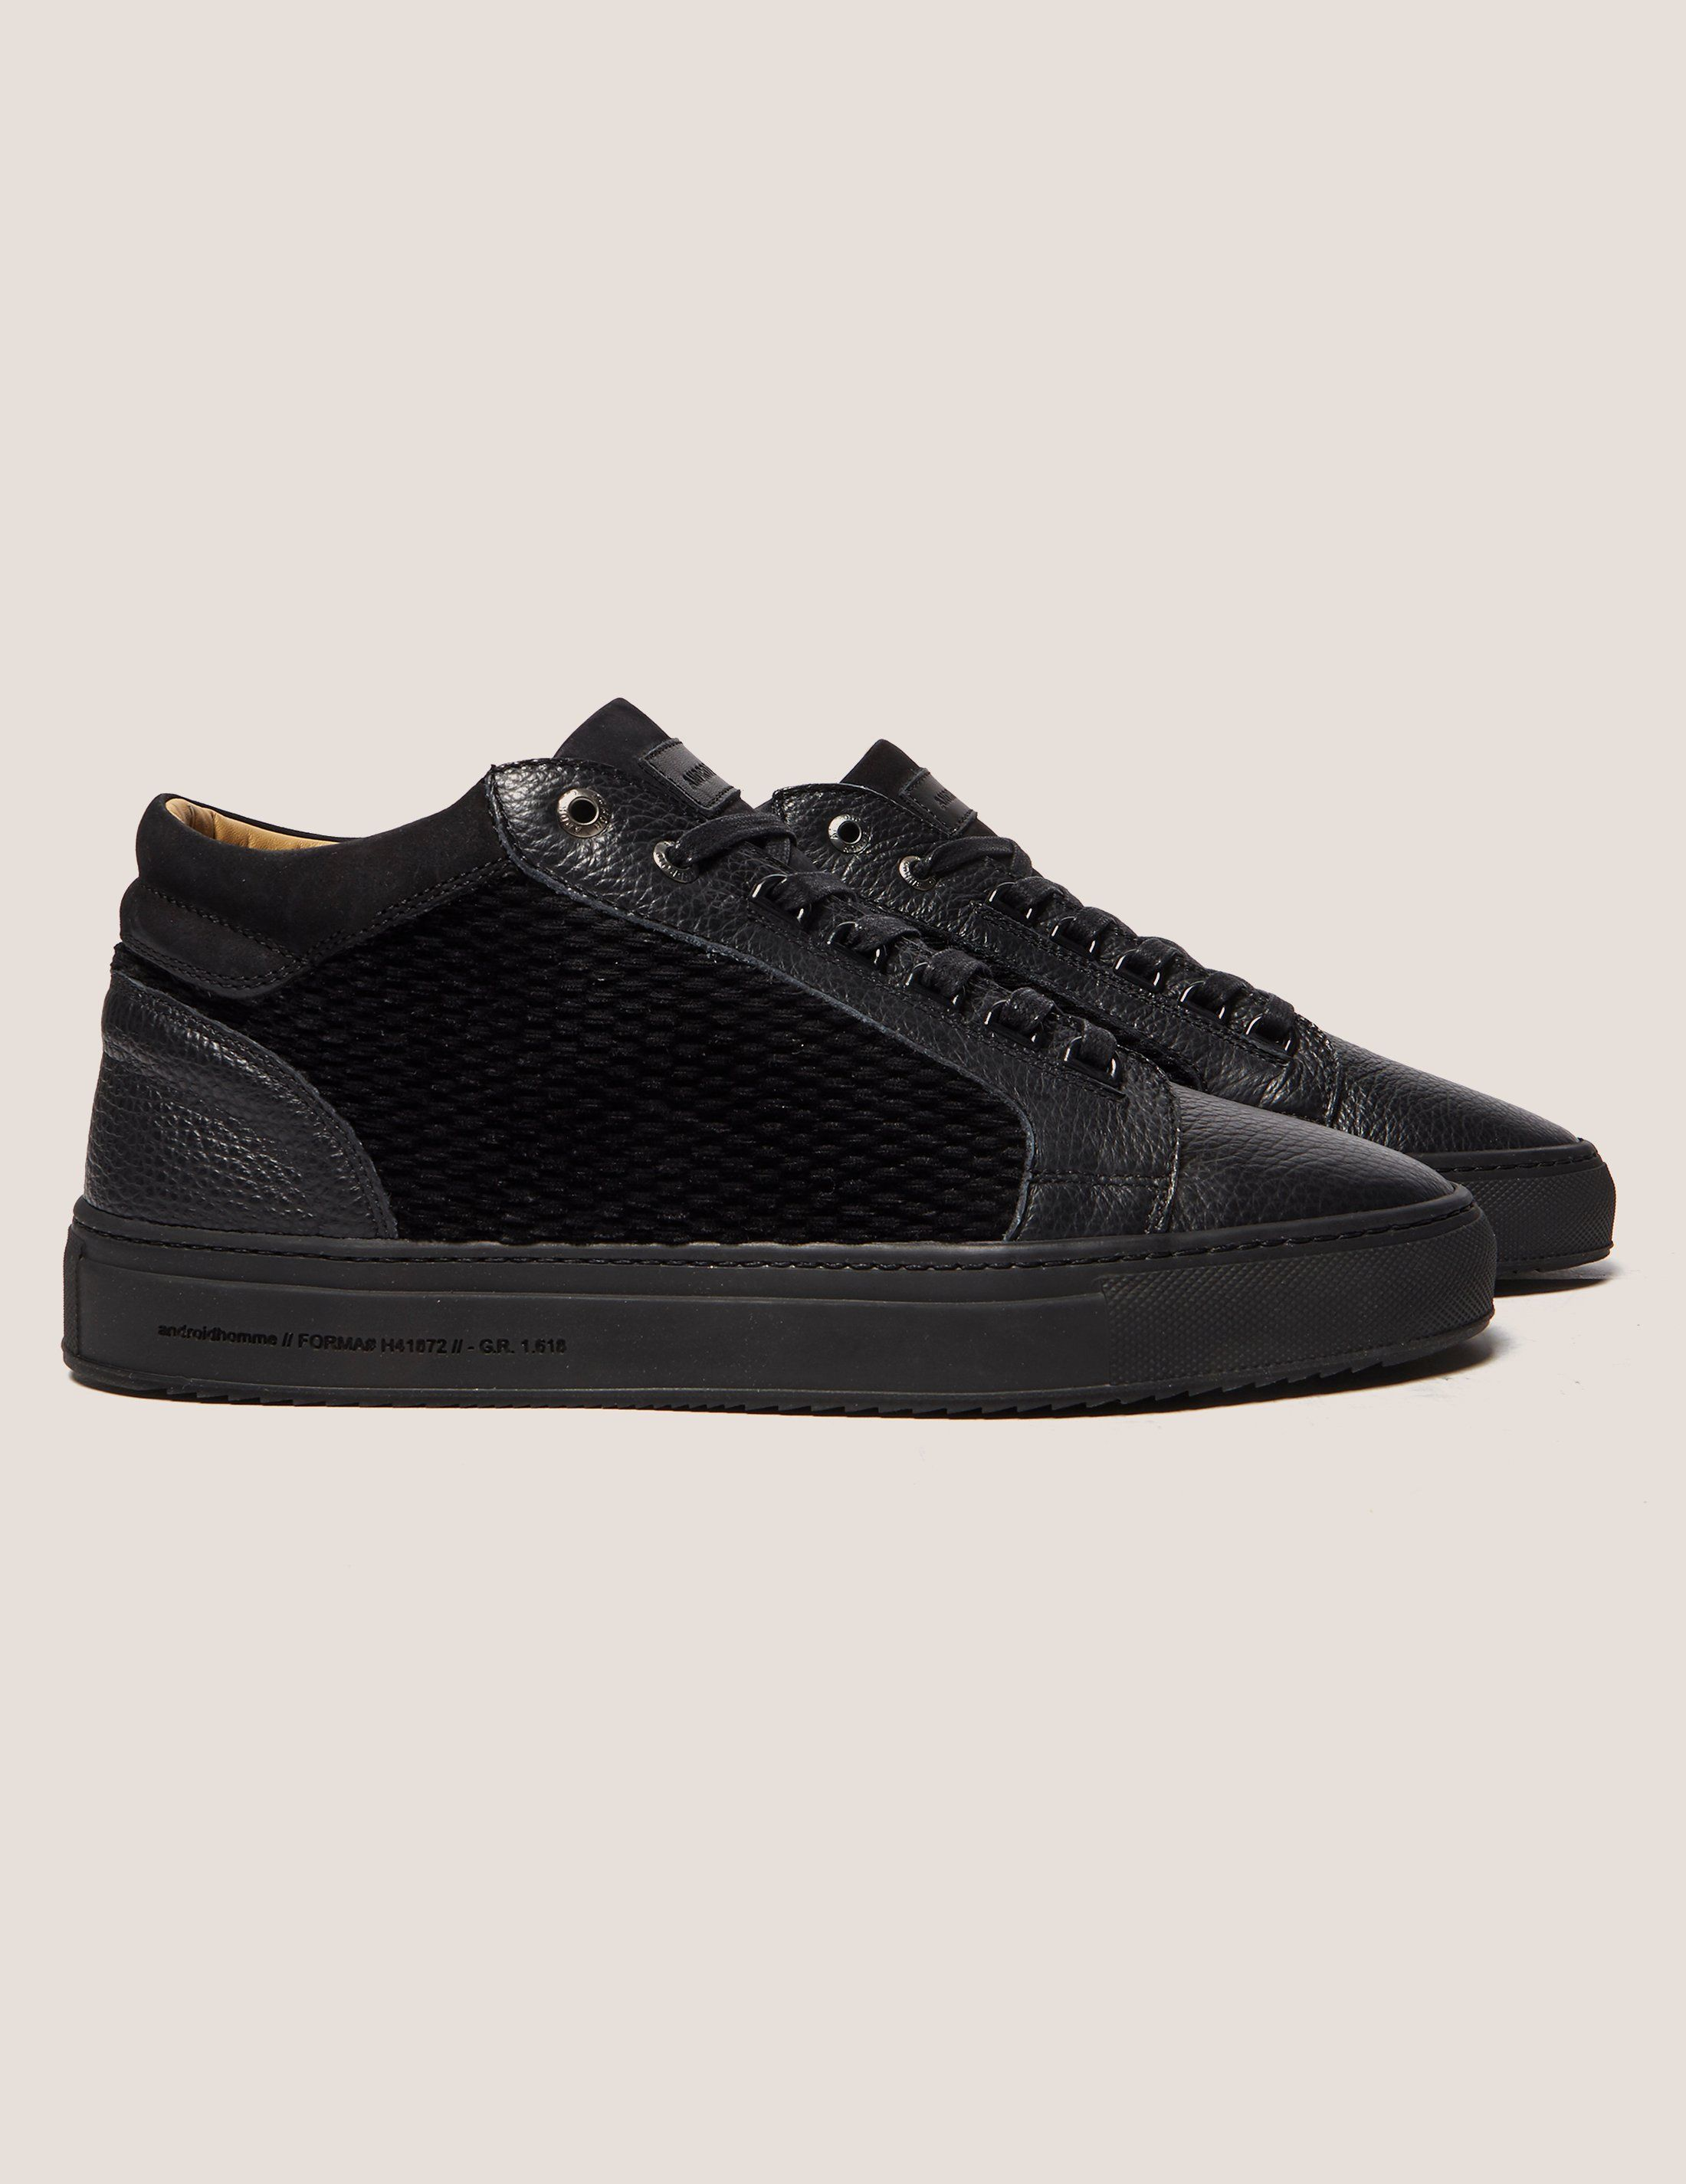 Android Homme Propulsion Sting